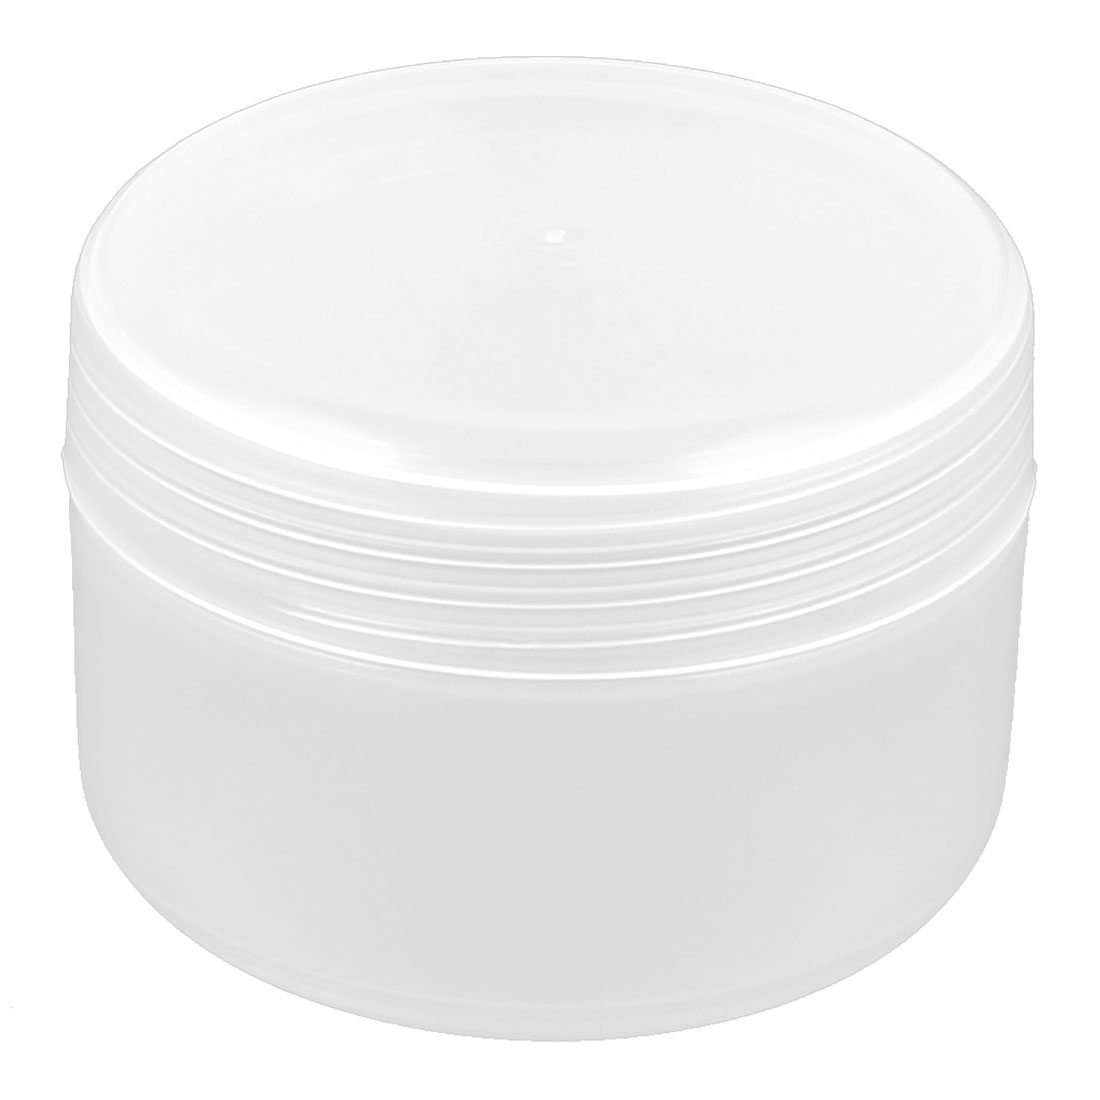 Clear Plastic Makeup Cosmetic Empty Jar Pot Face Cream Skin Lotion Moisturizer Bottle Container 100g